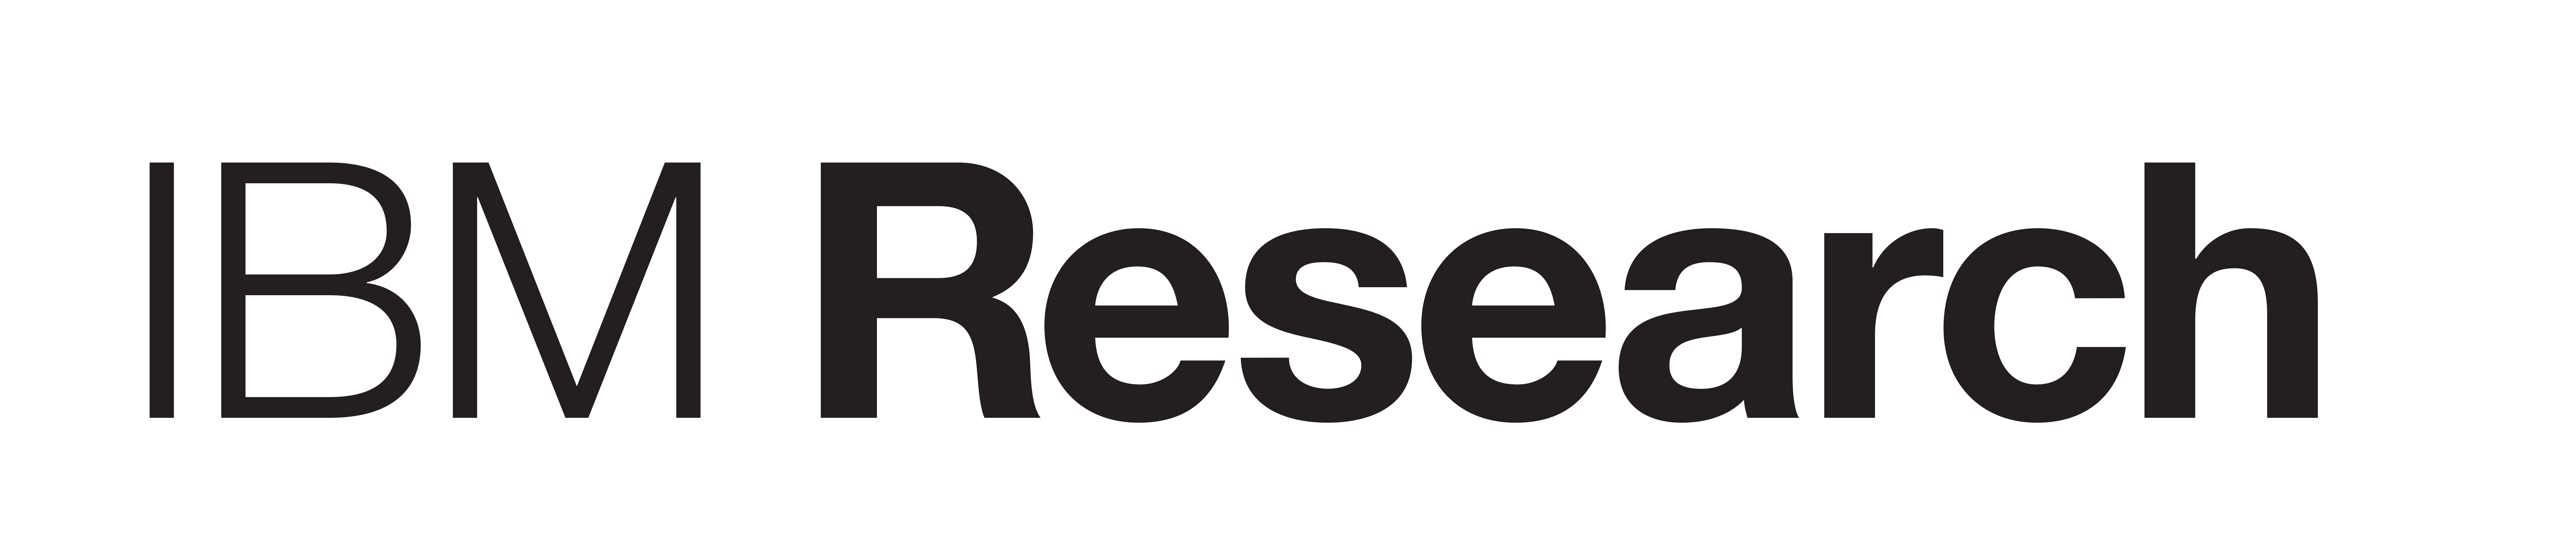 IBM_Research_Logo